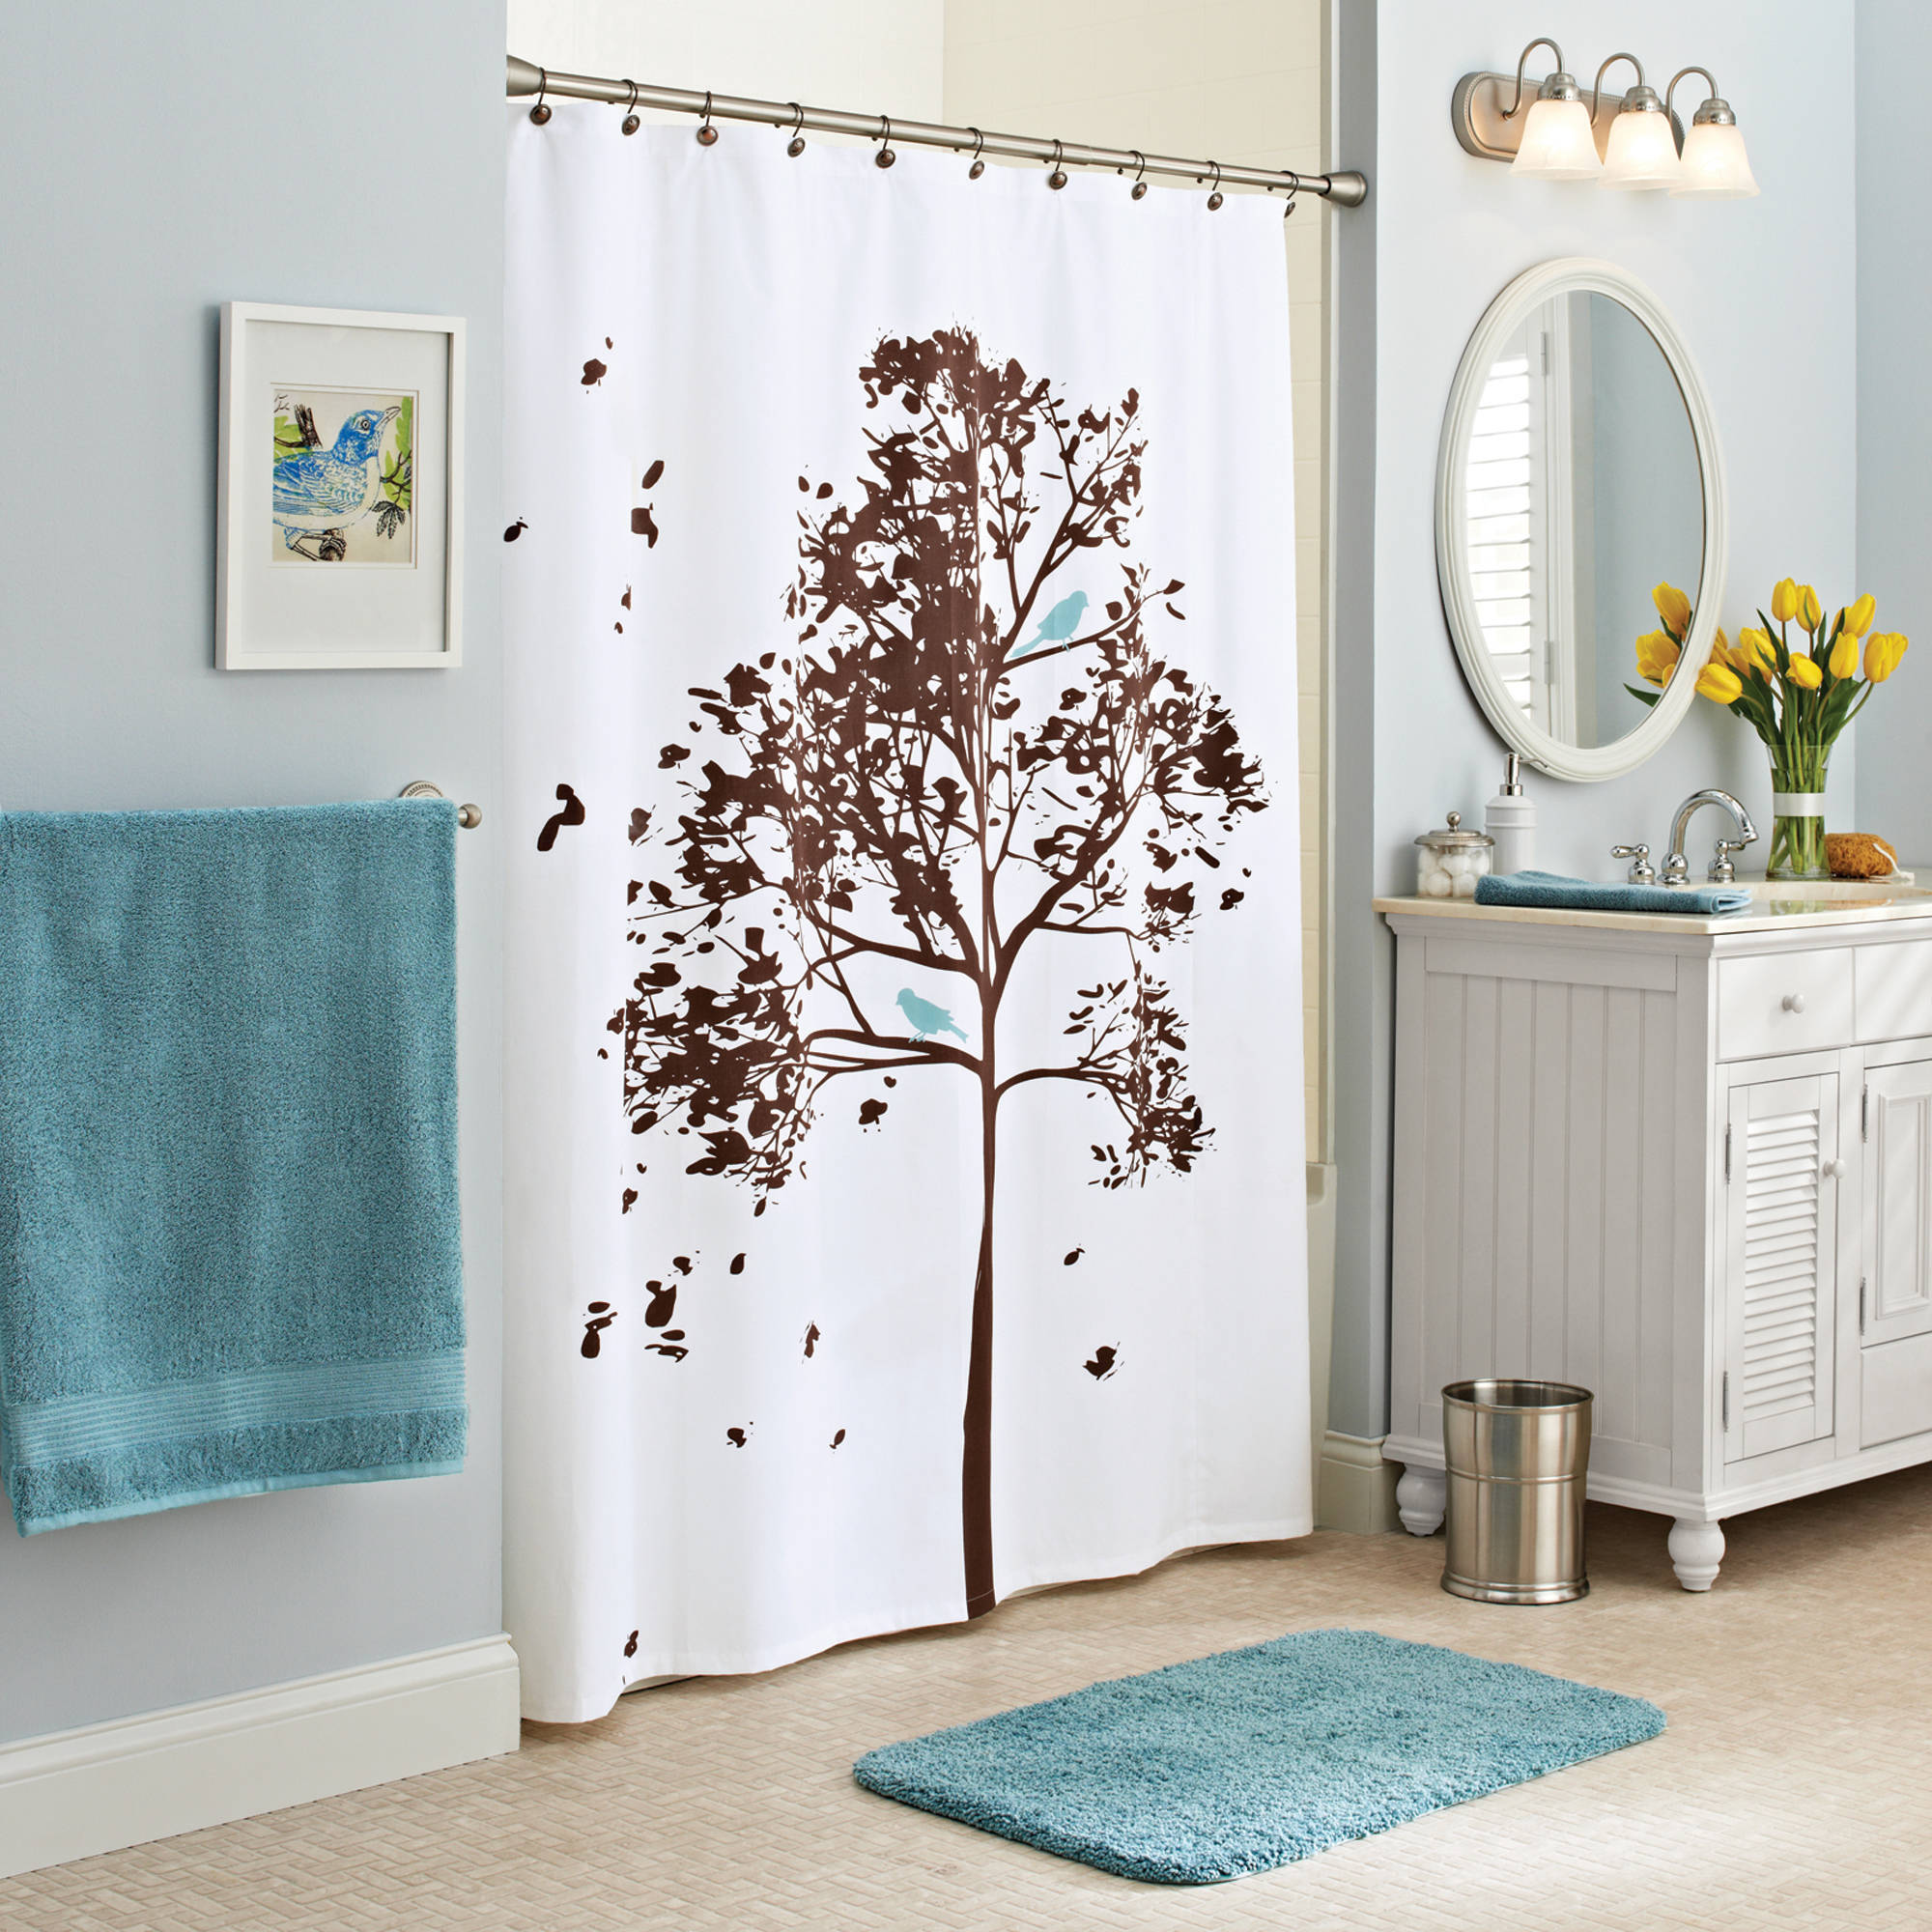 extra brown and red shower curtain. Better Homes and Gardens Farley Tree Fabric Shower Curtain Curtains  Walmart com